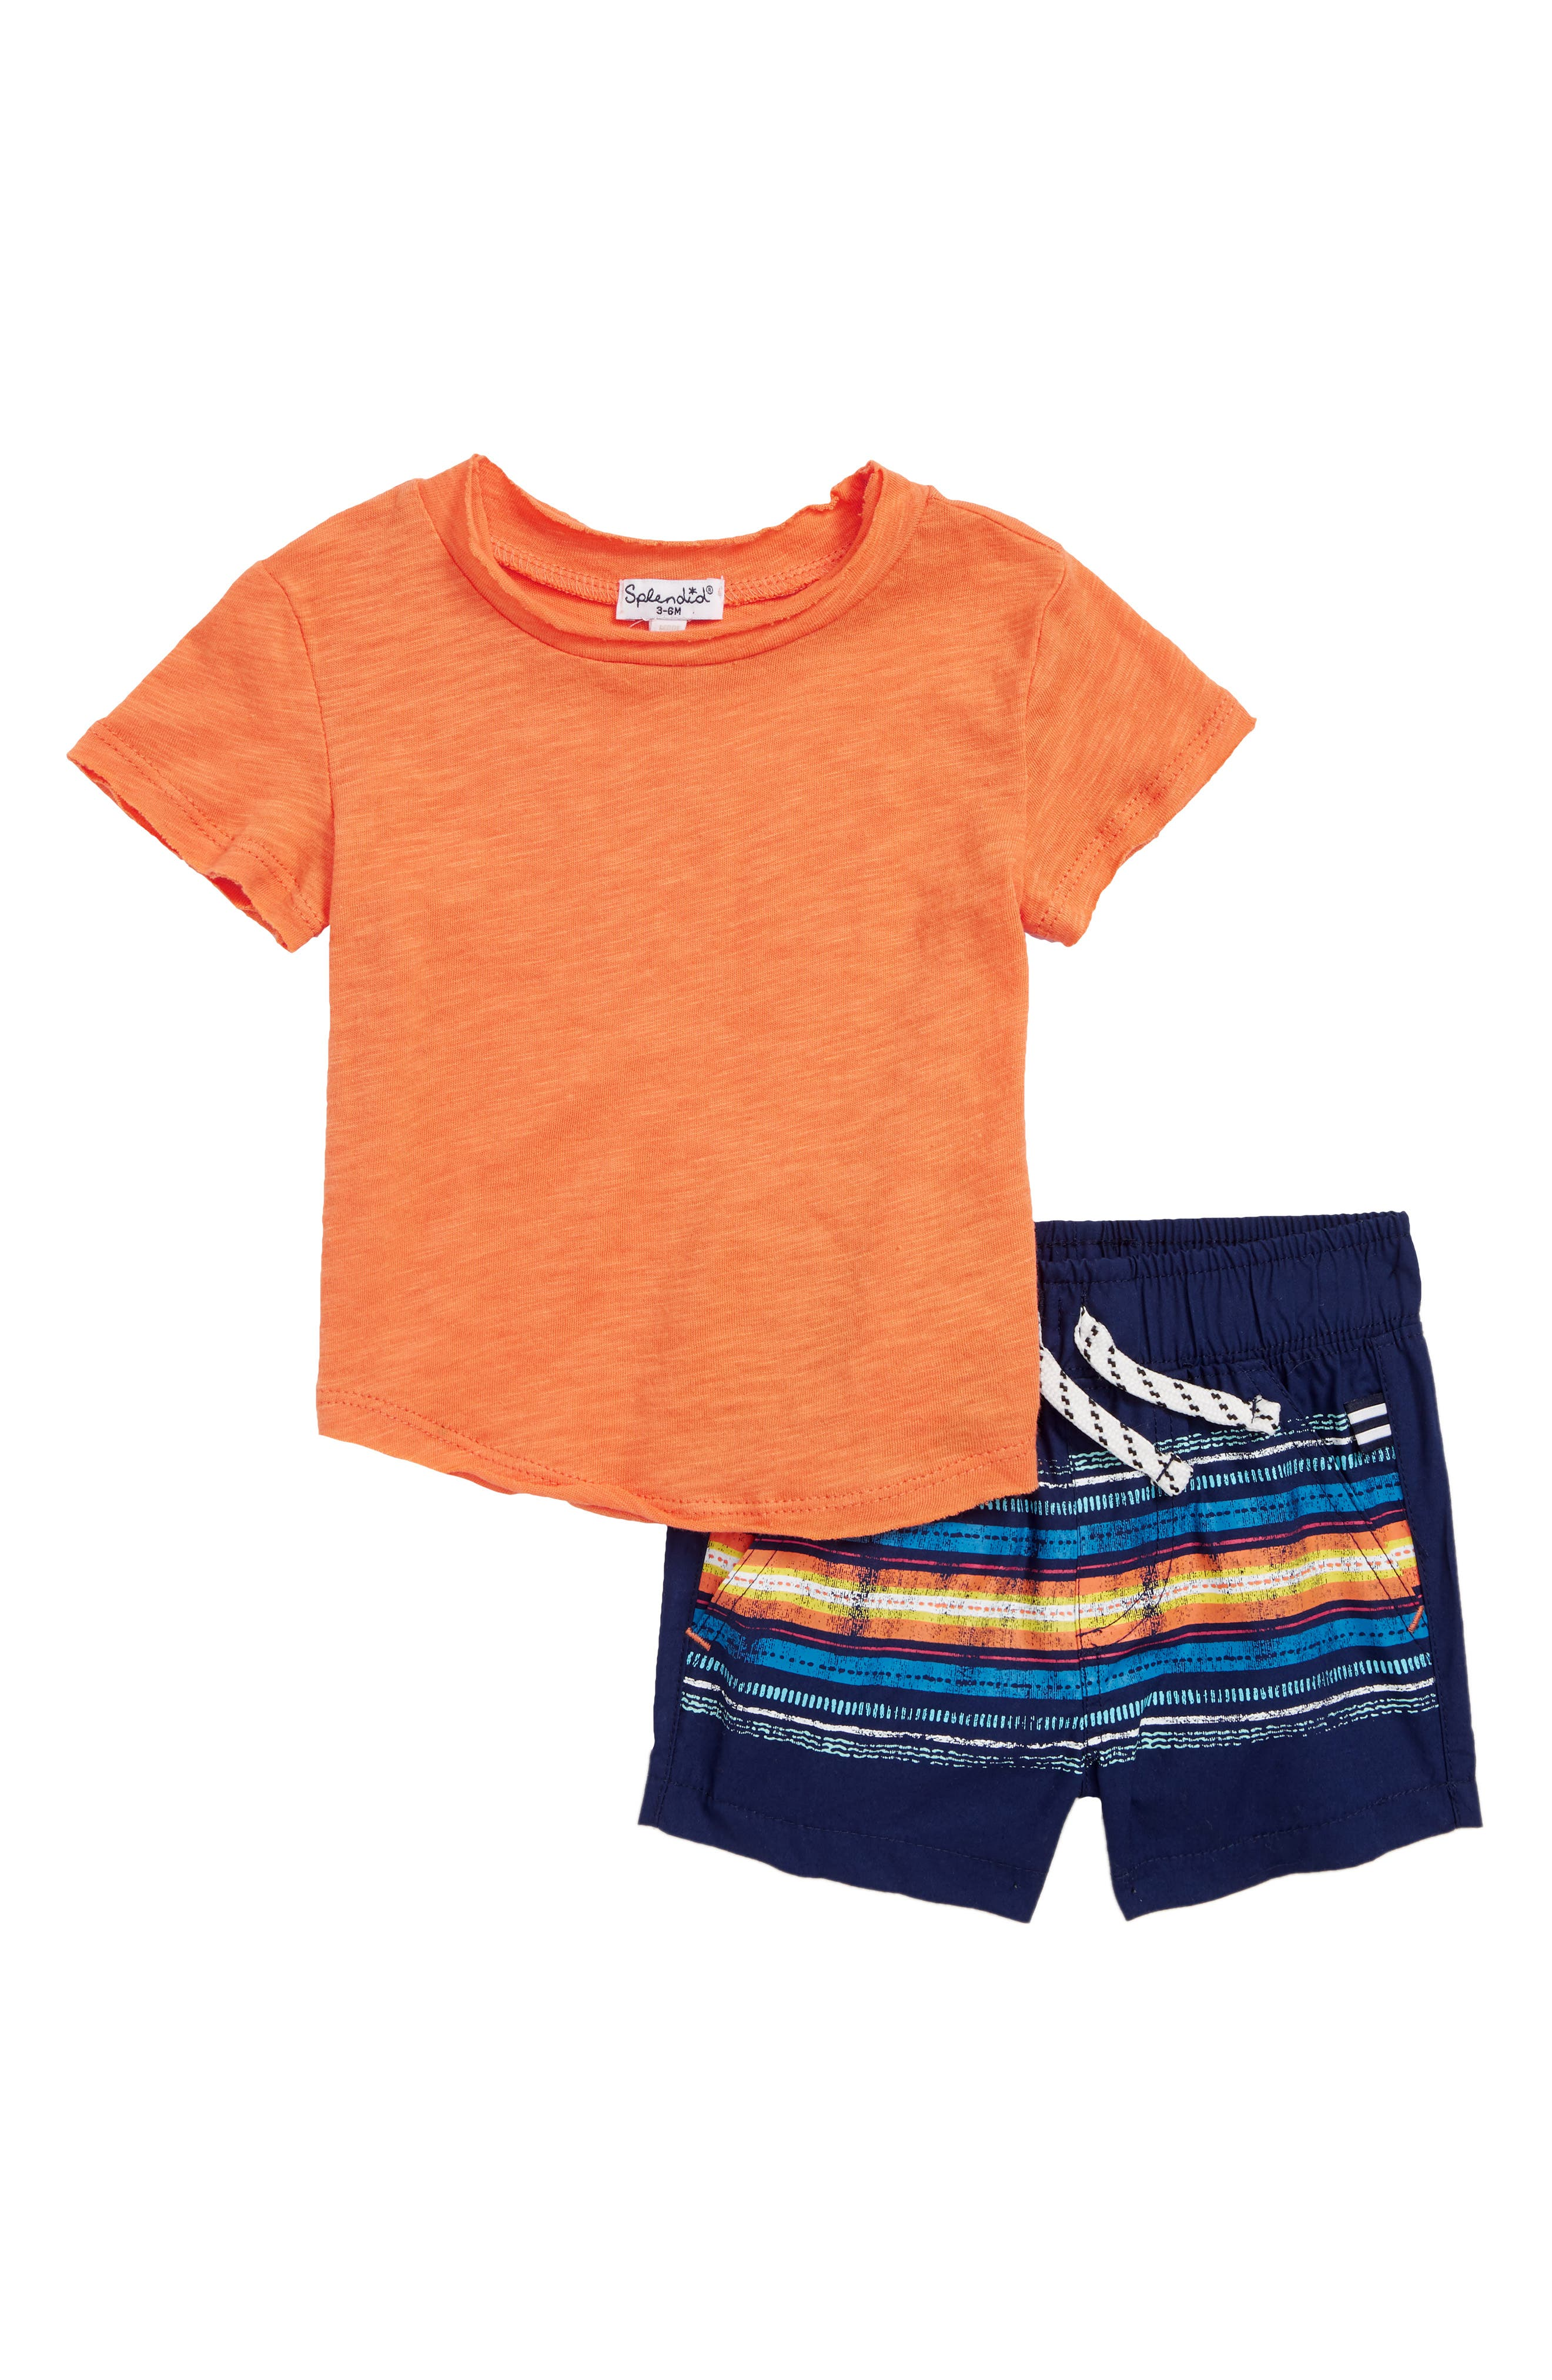 Splendid T-Shirt & Stripe Shorts Set (Baby Boys)